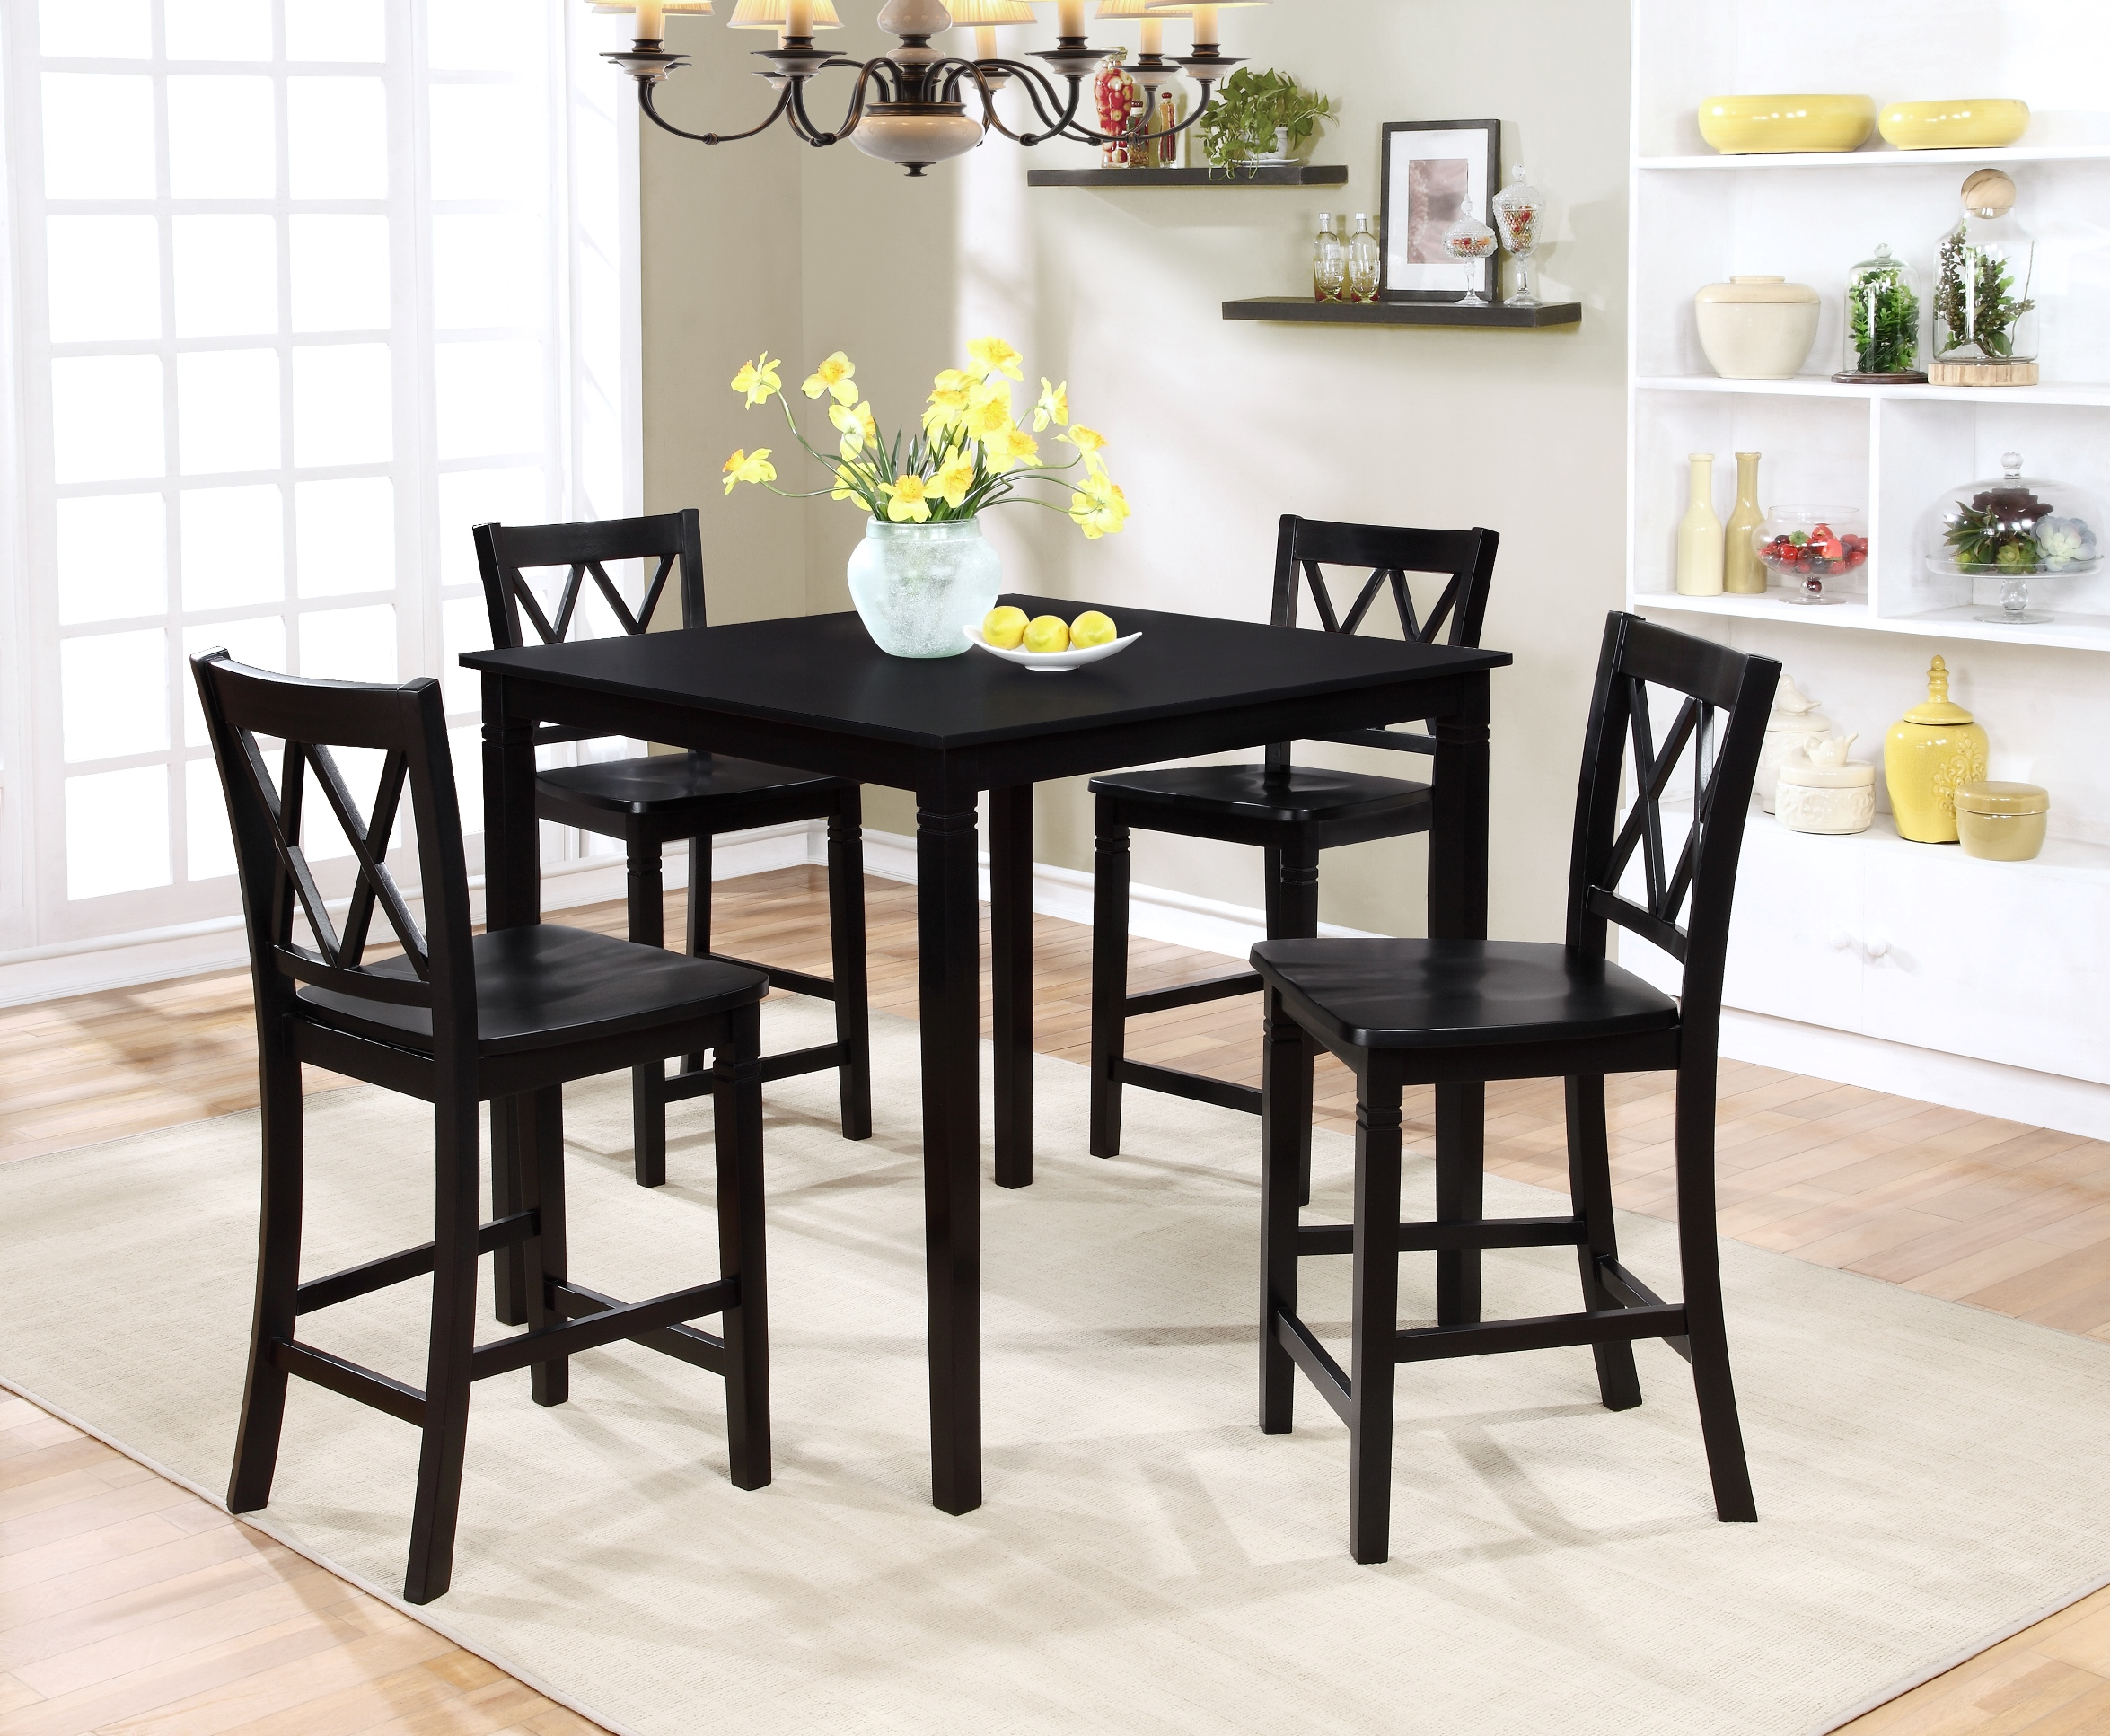 Dahlia 3 Seat Leather Sofa Essential Home Dahlia 5 Piece Square Table Dining Set Black